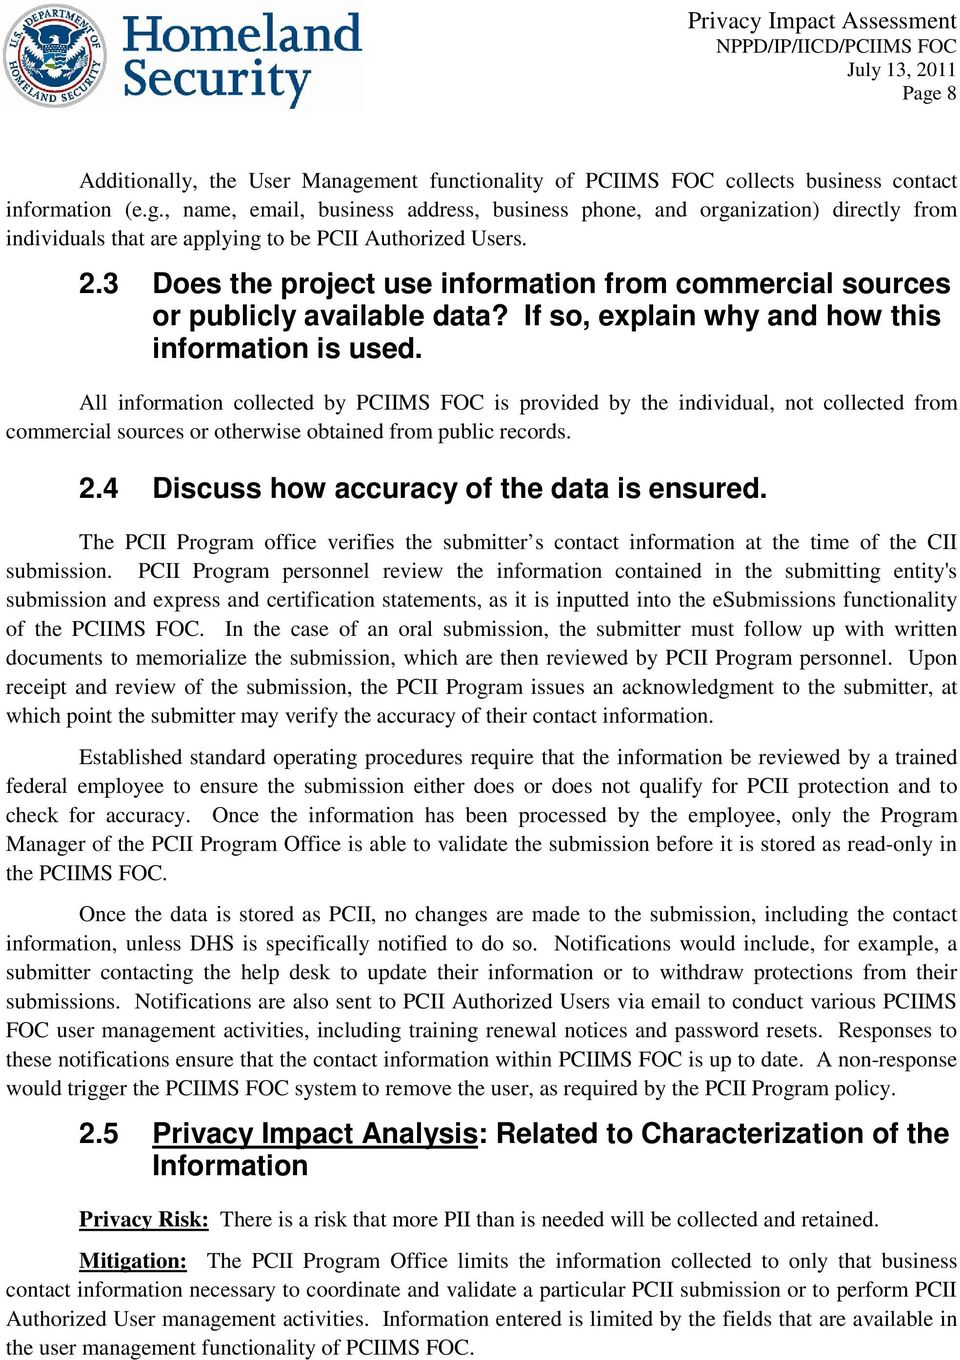 All information collected by PCIIMS FOC is provided by the individual, not collected from commercial sources or otherwise obtained from public records. 2.4 Discuss how accuracy of the data is ensured.